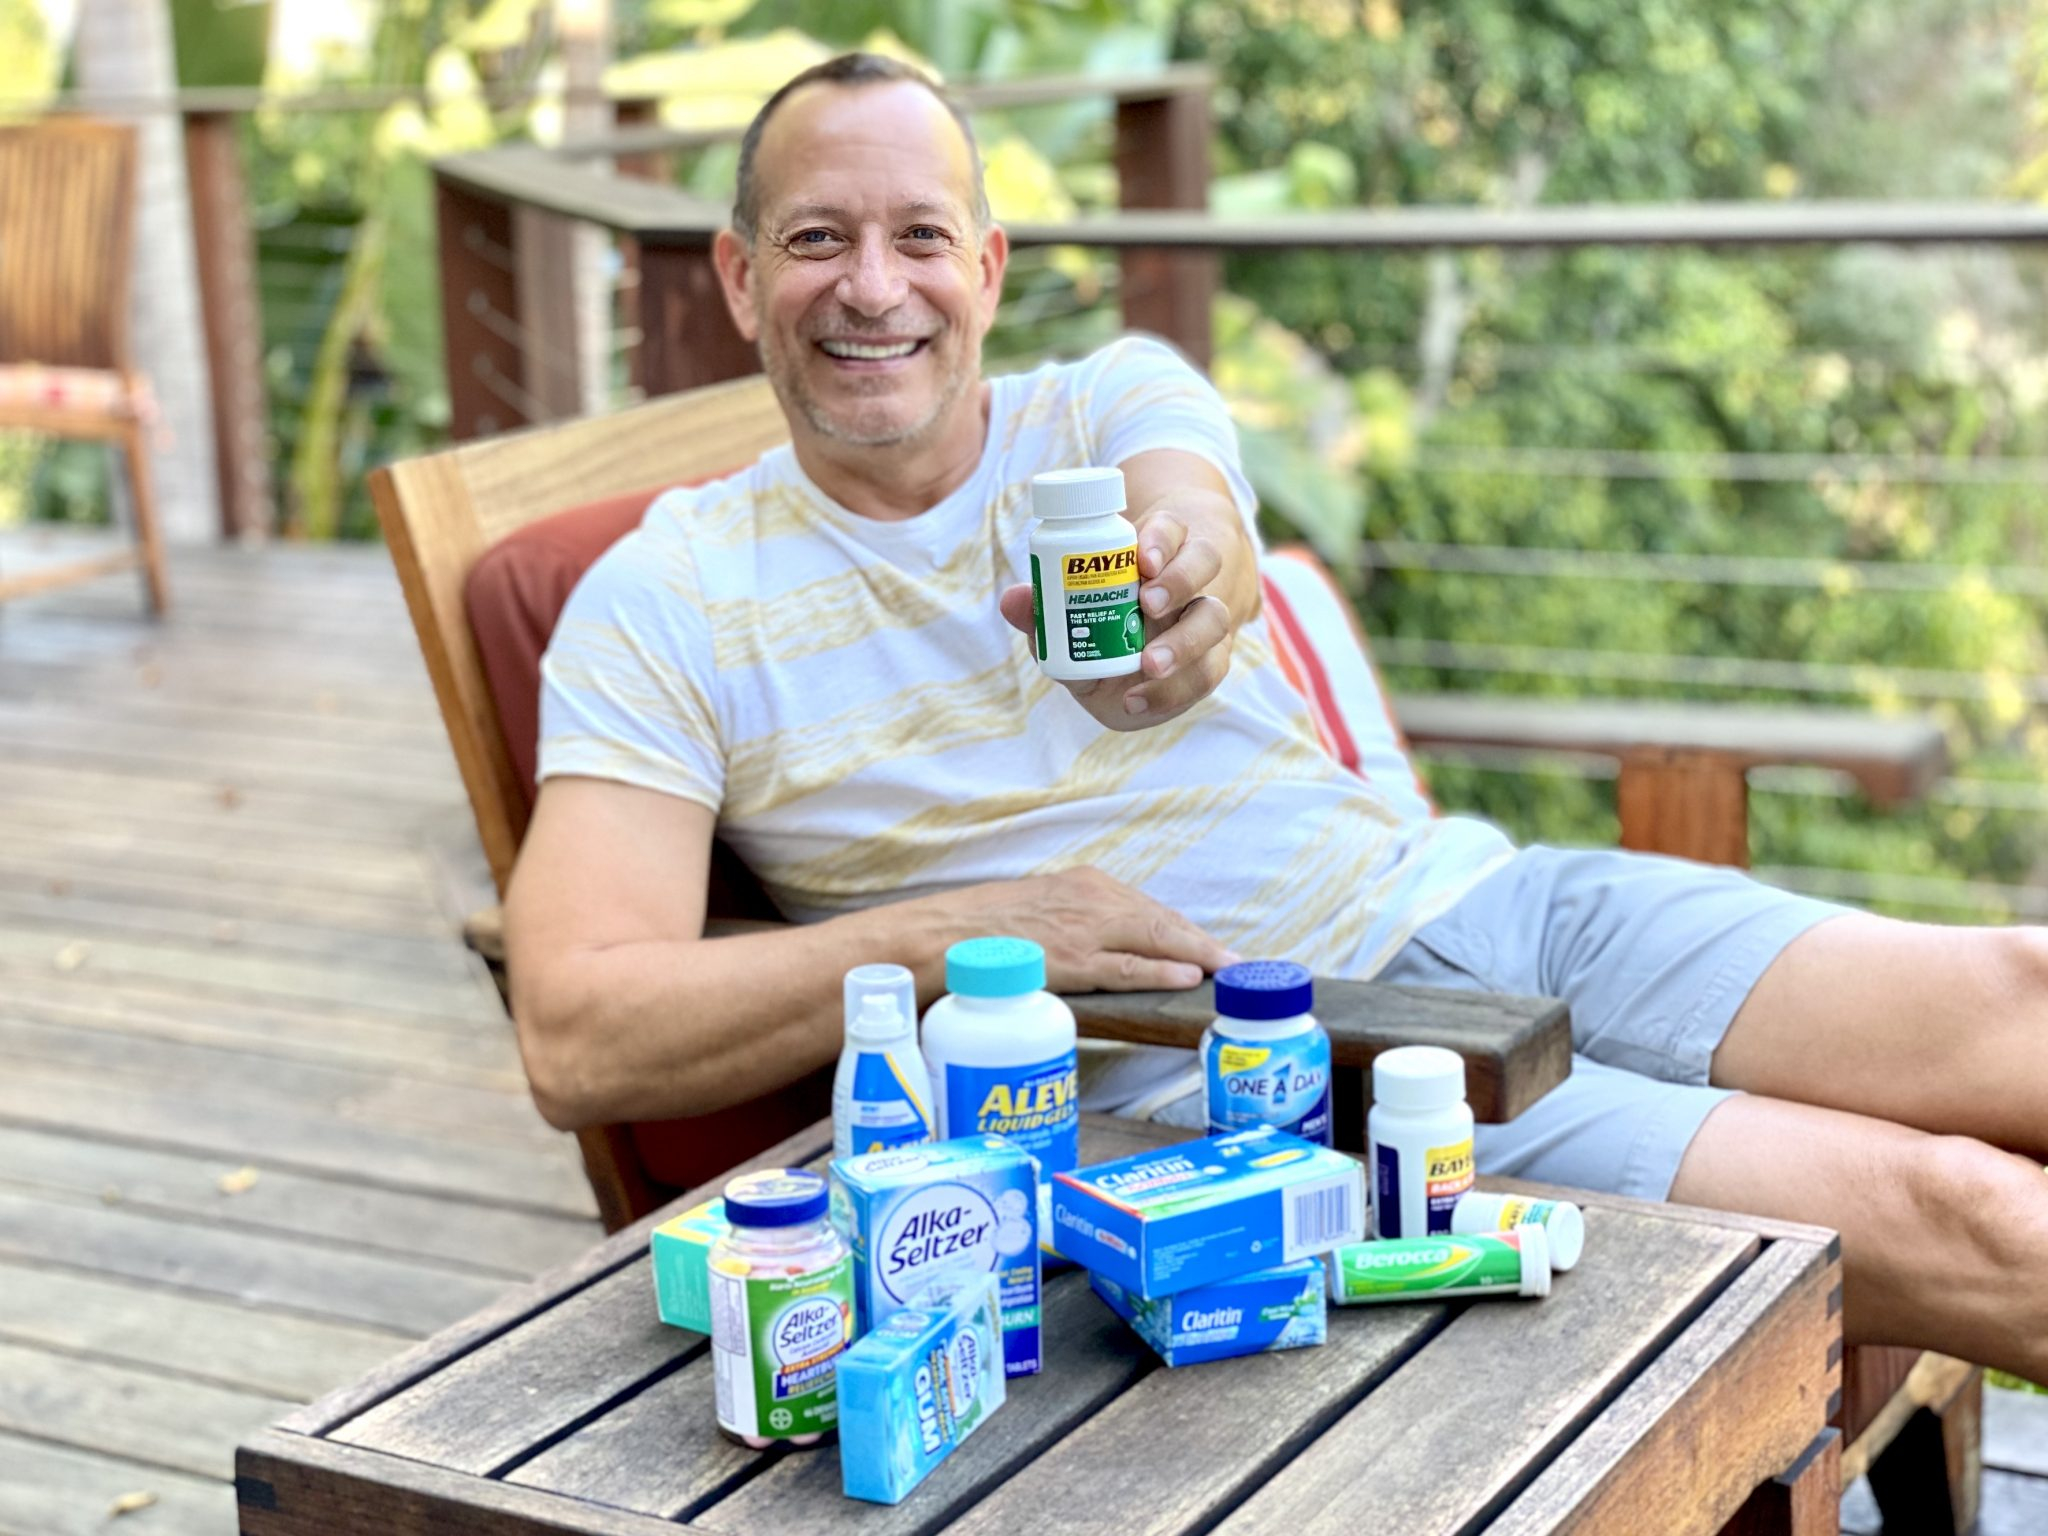 man holding Bayer Headache medication towards camera, with other Bayer products on table next to him